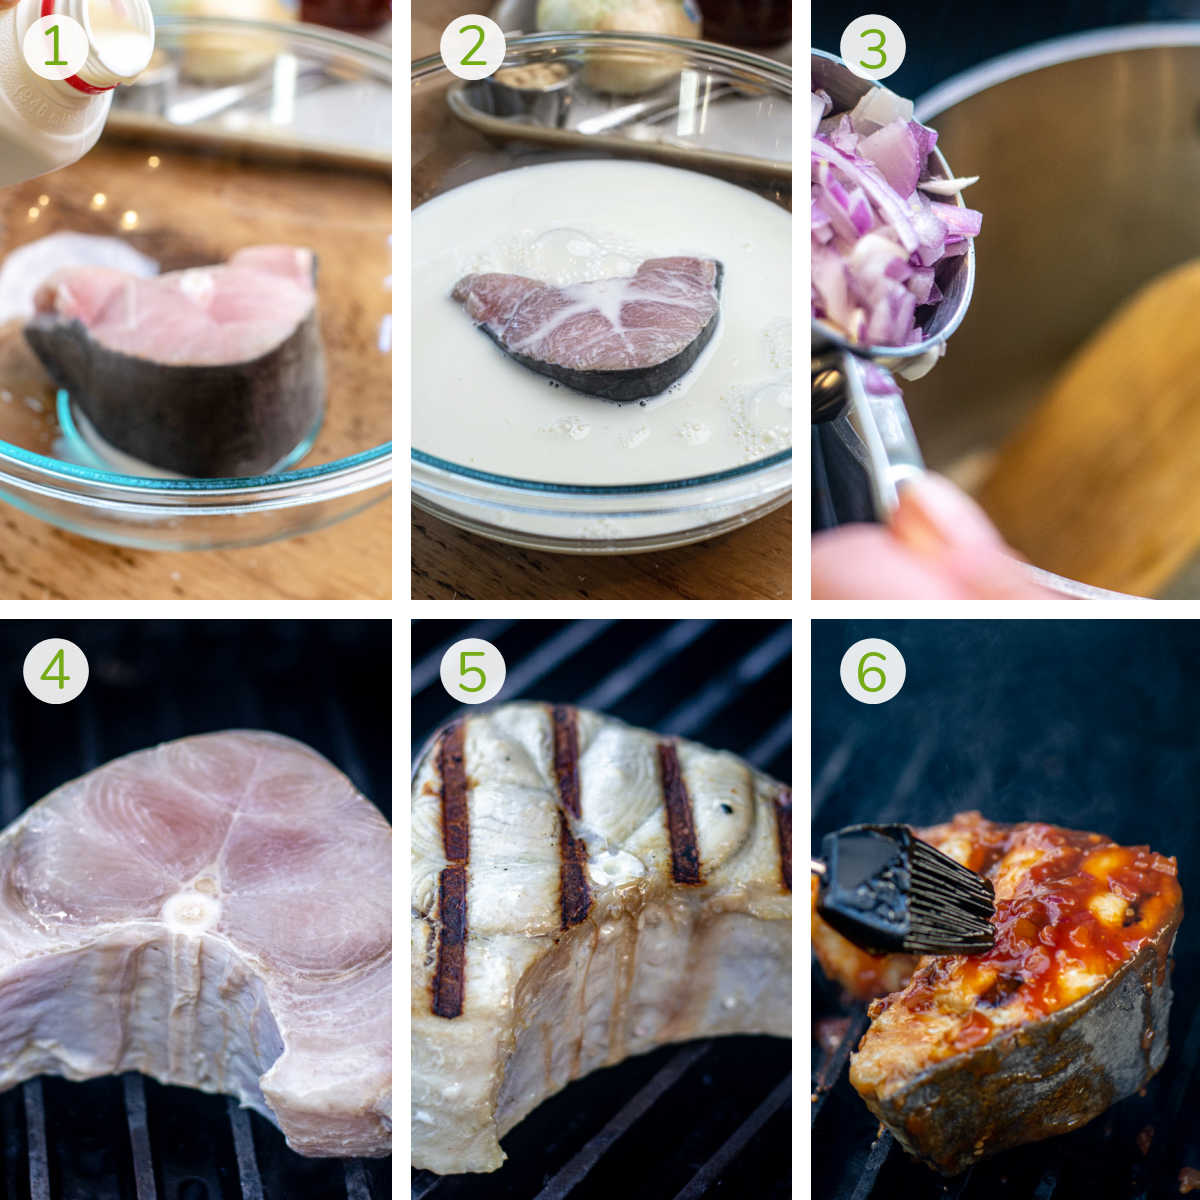 instruction photos showing how to soak the shark in milk, make the sauce and then grill the shark steak.